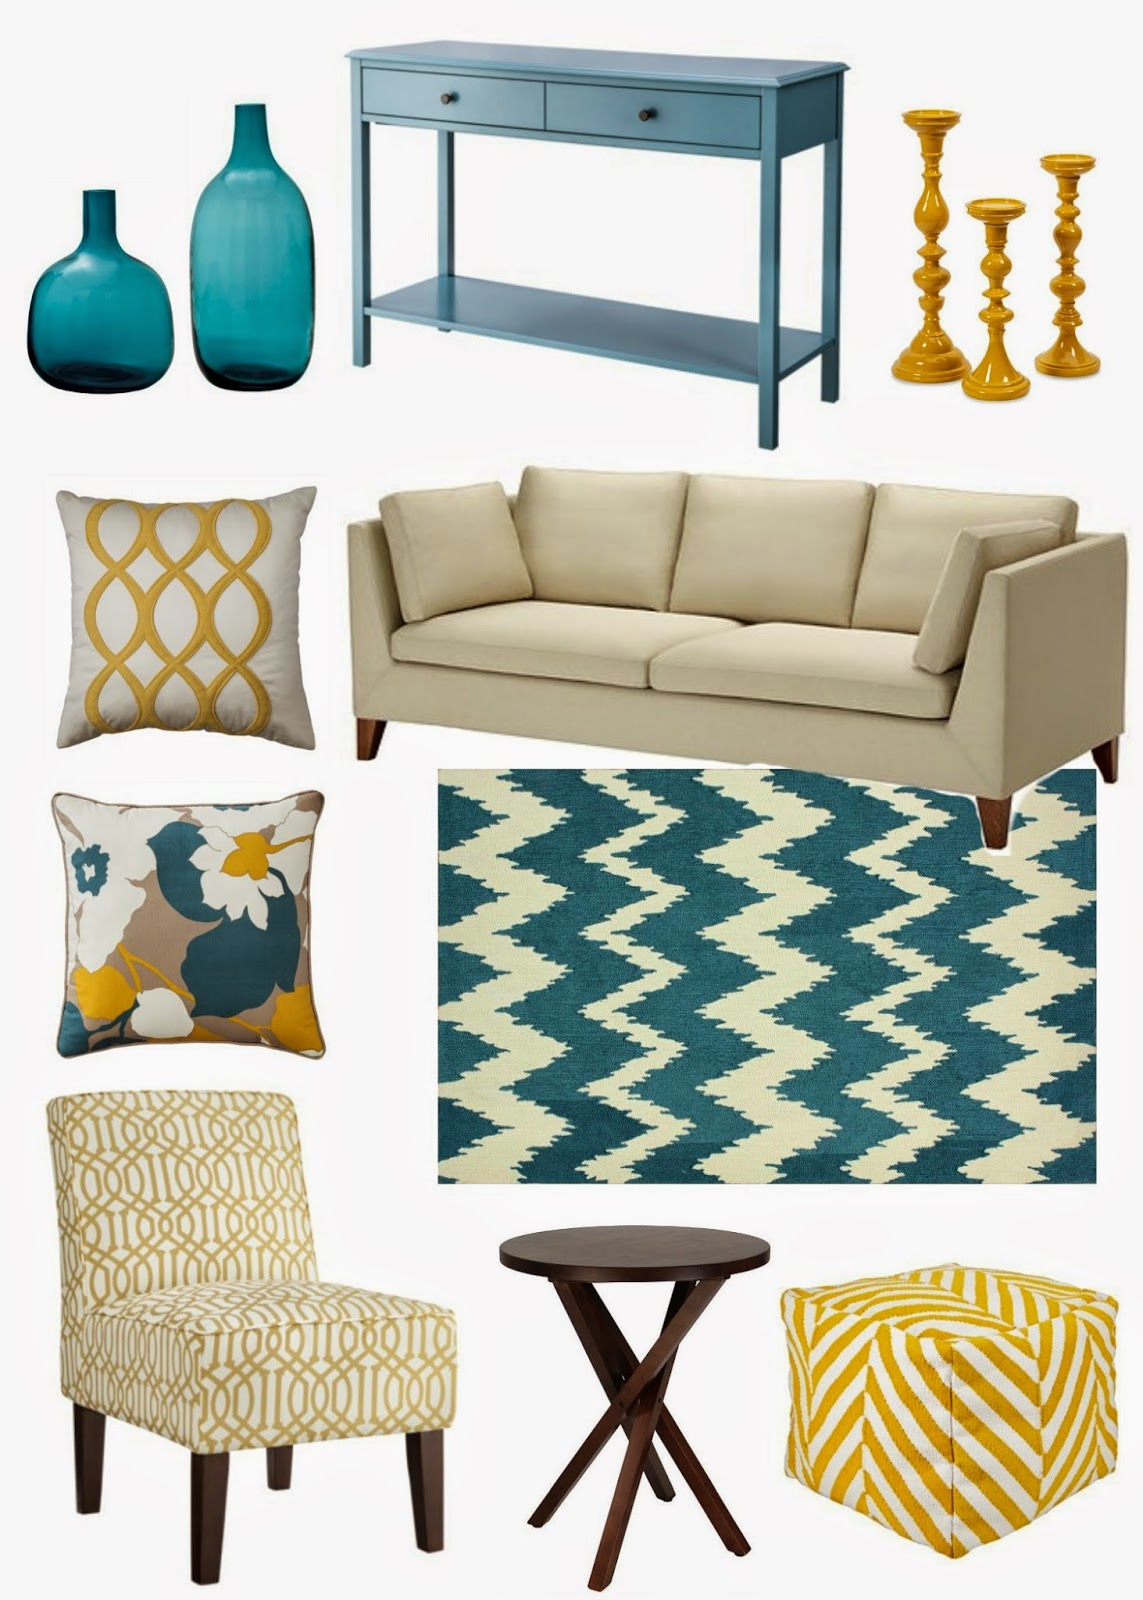 Teal And Yellow Home Decor 28 Images Teal And Brown Home Decorators Catalog Best Ideas of Home Decor and Design [homedecoratorscatalog.us]